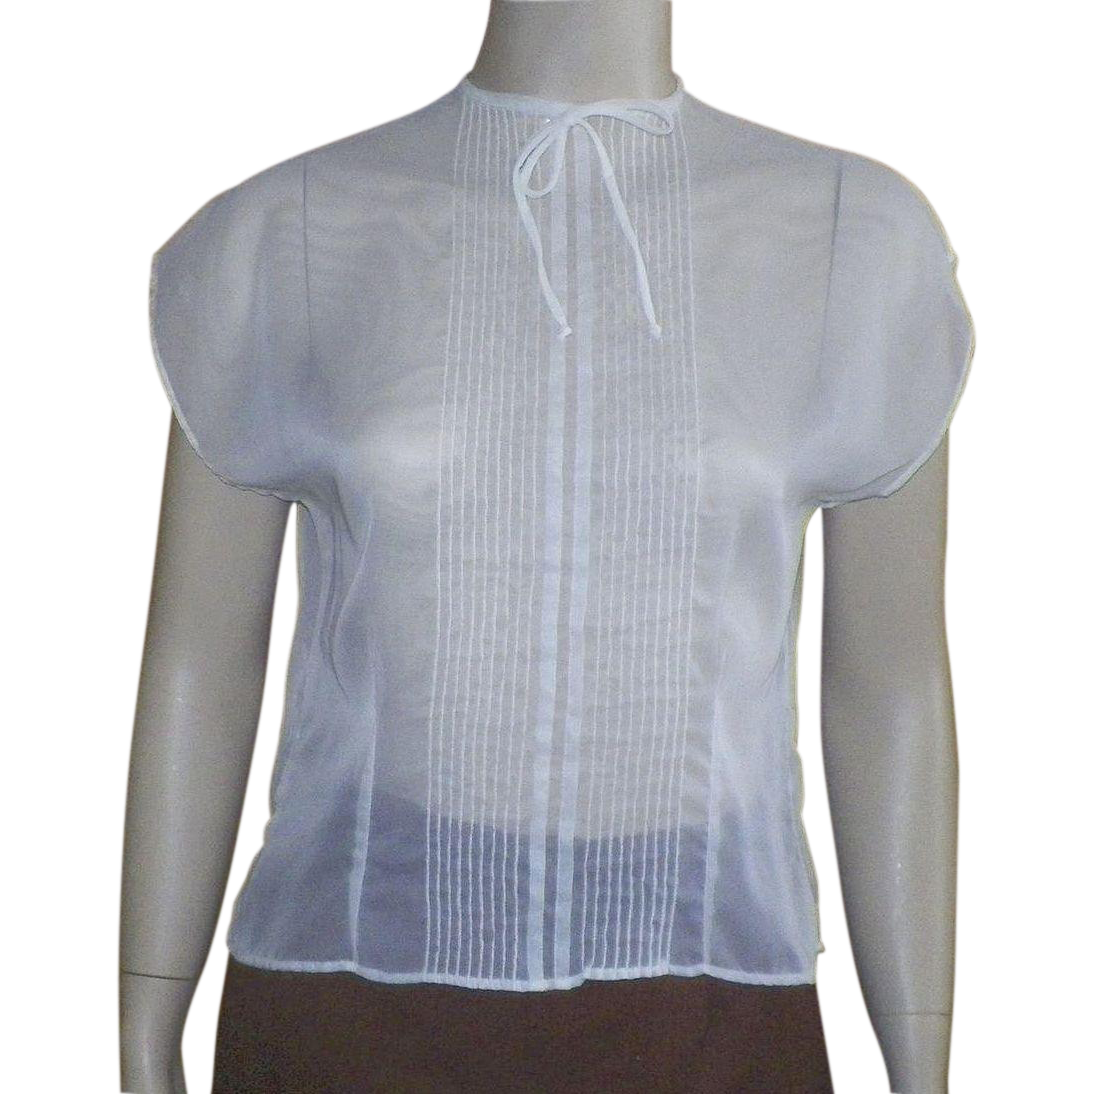 Vintage 1950's Sheer White Nylon Blouse By Baar and Beards Inc.